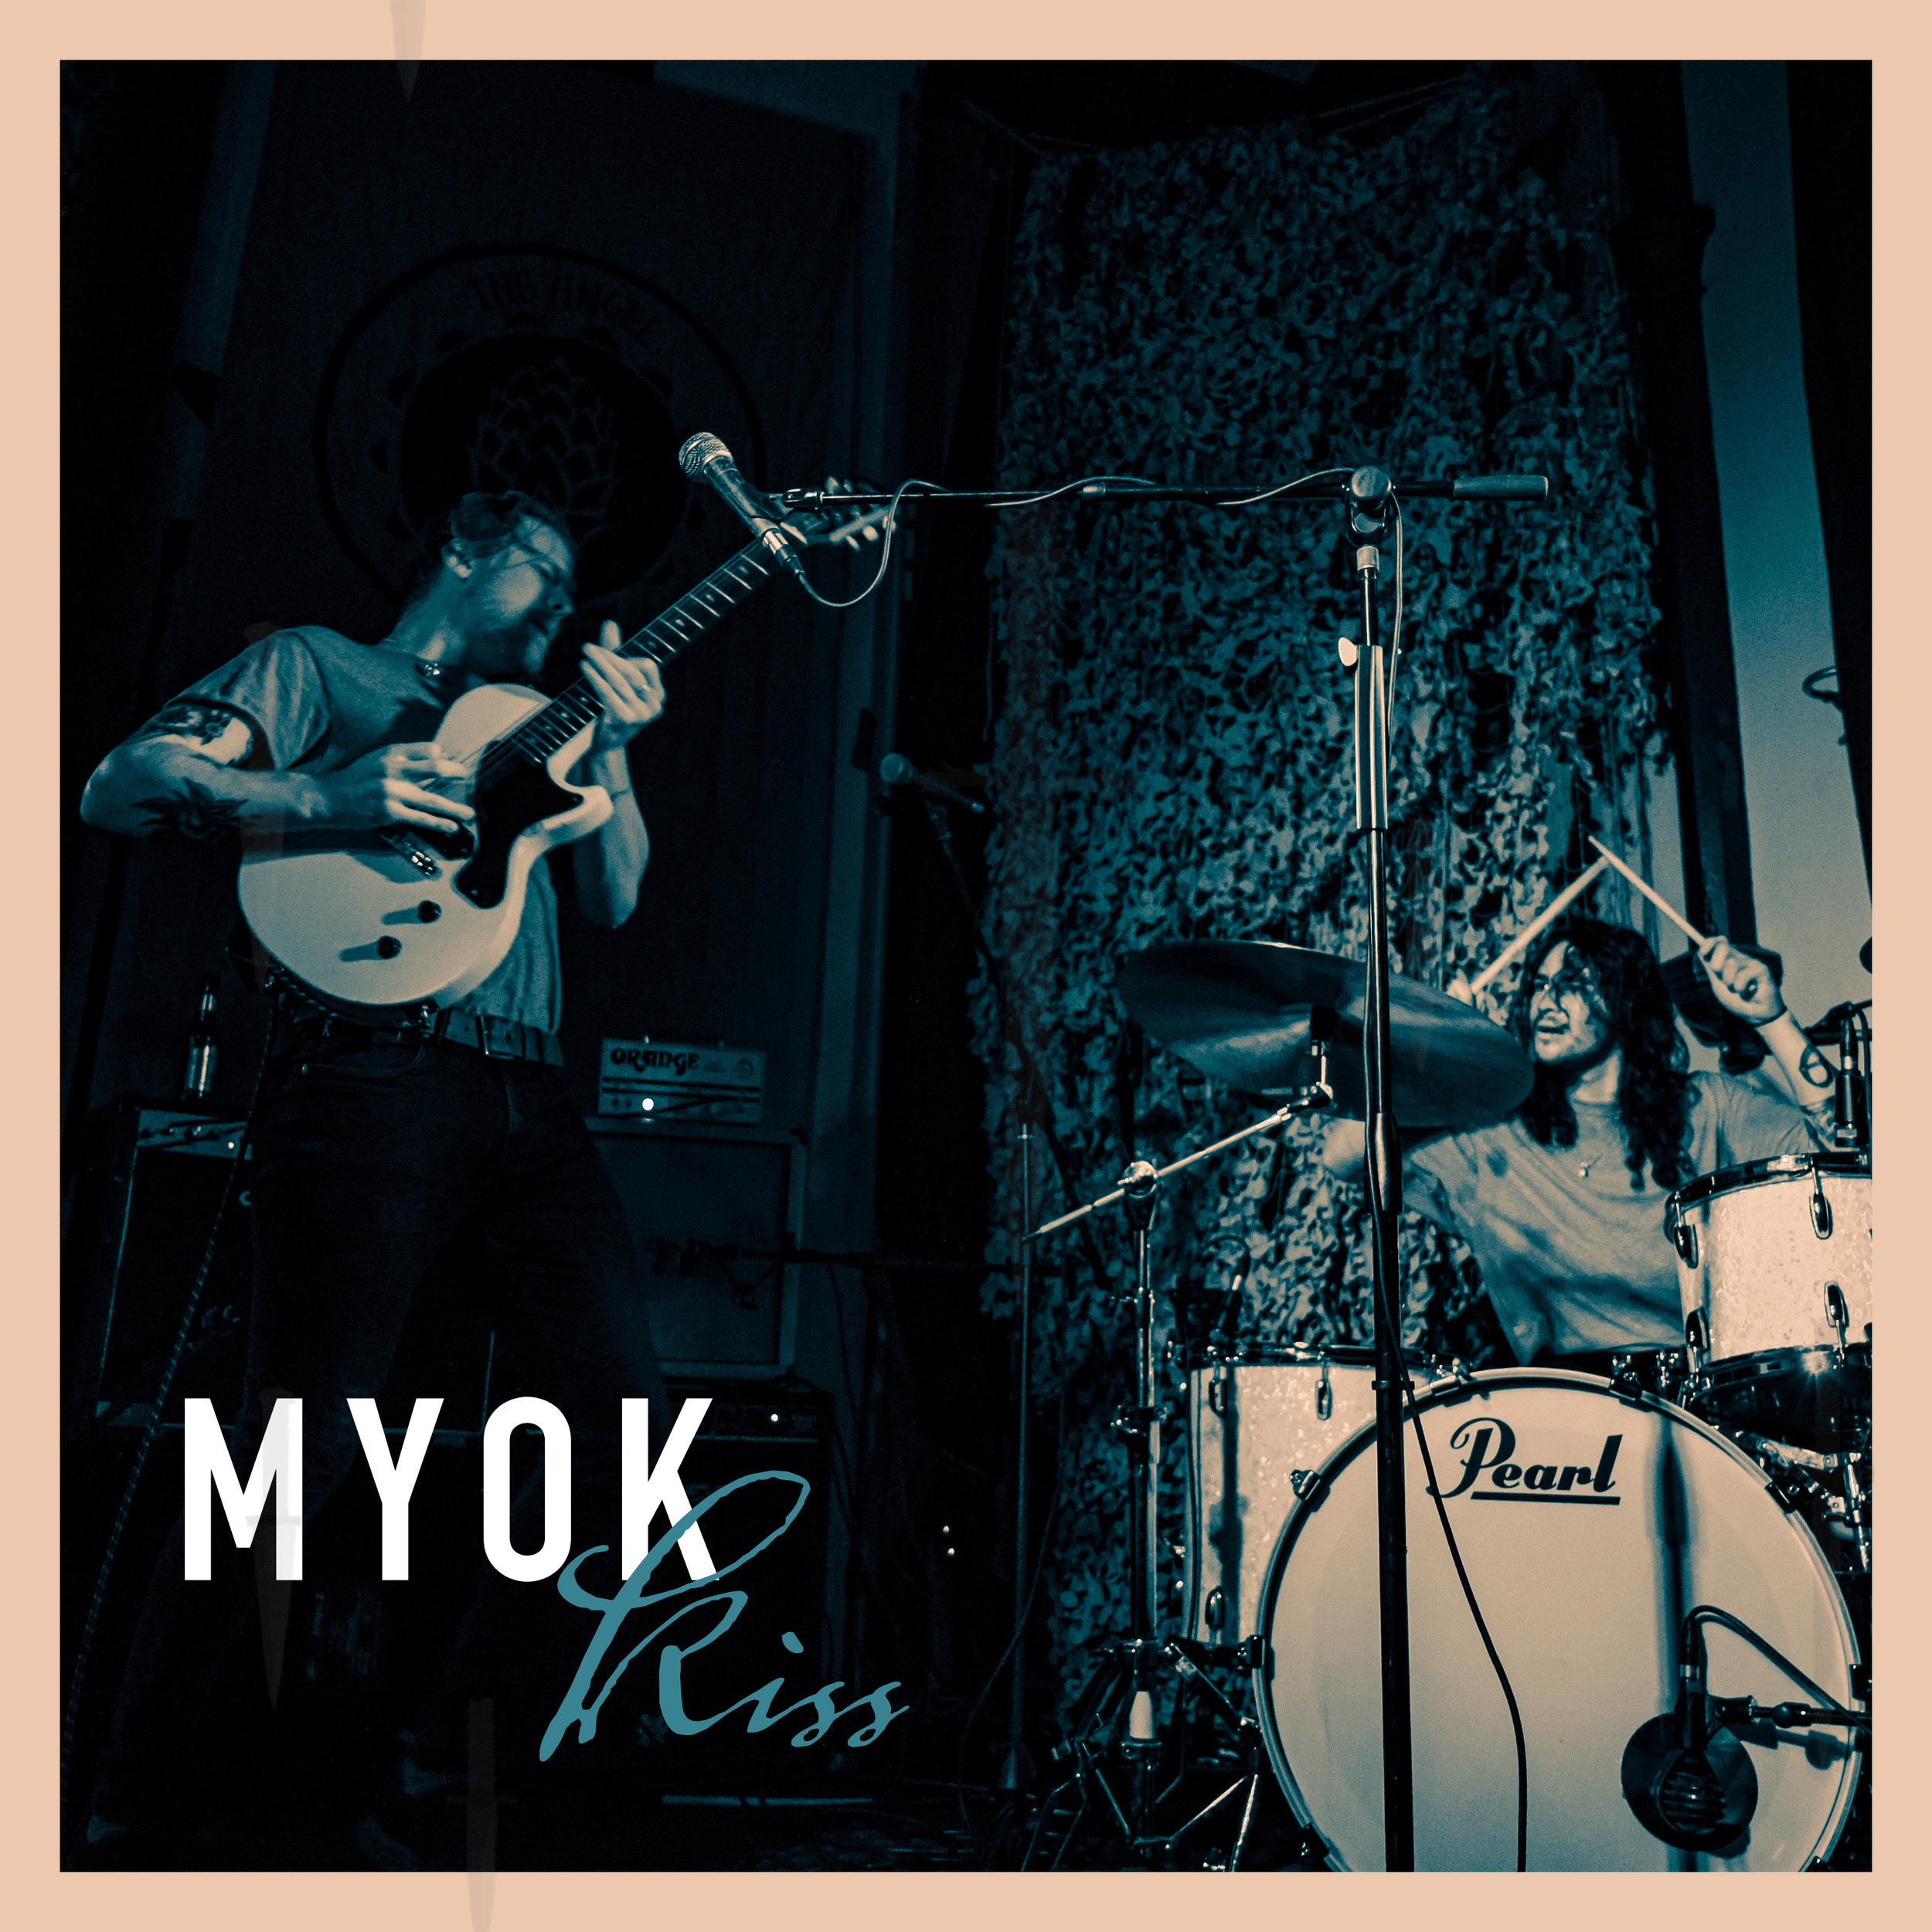 MYOK-Kiss-Packshot.jpg